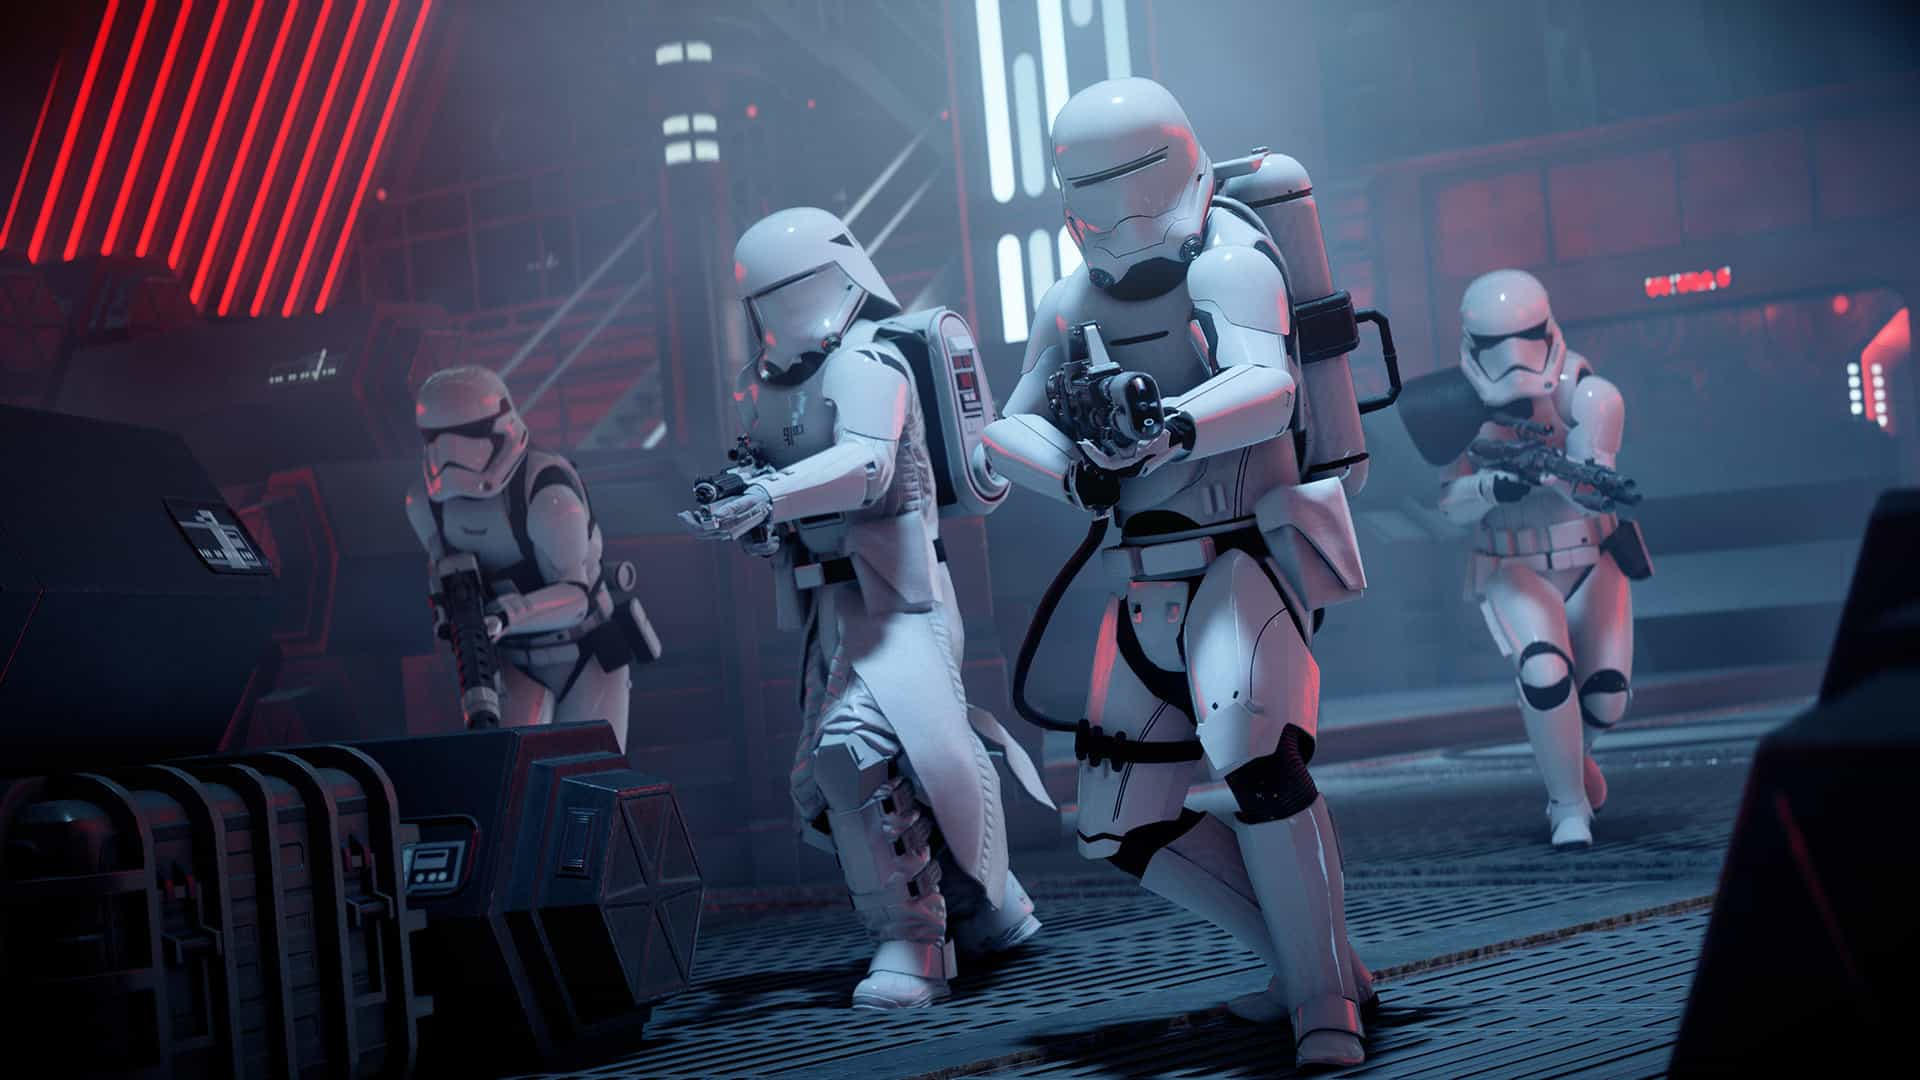 battlefront 2 update 1.19